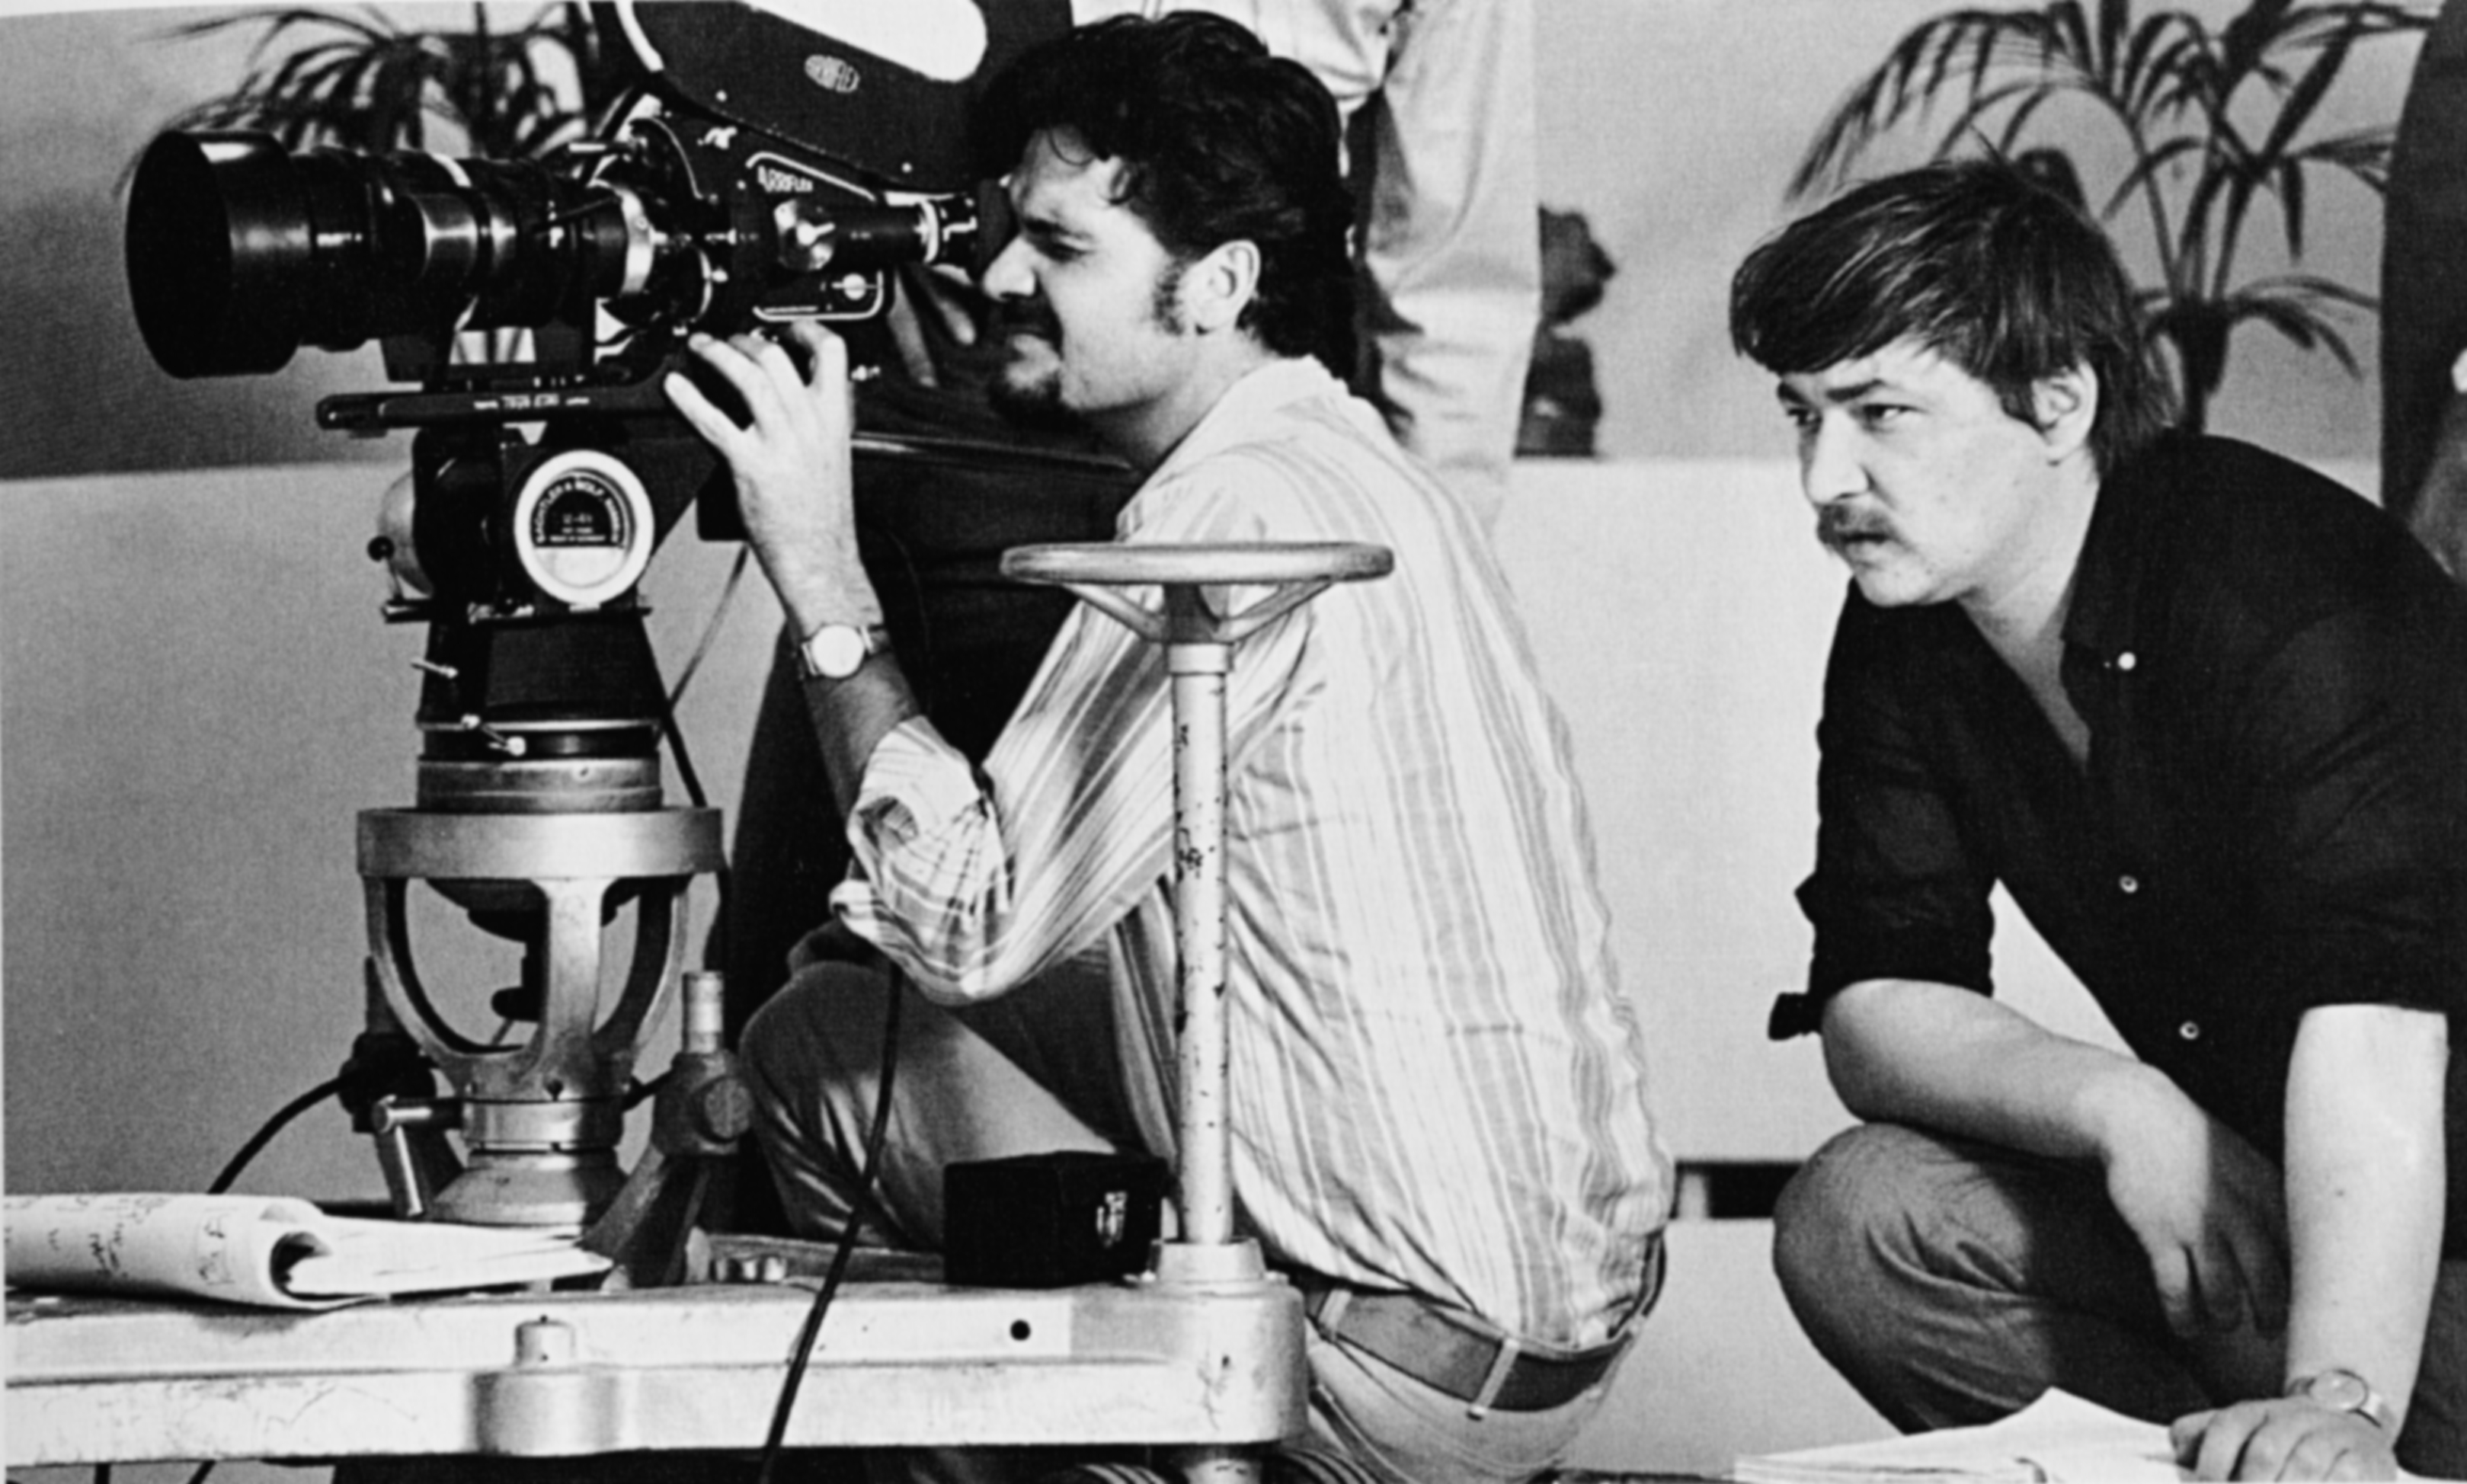 In Memoriam: Michael Ballhaus, ASC, BVK (1935-2017) - The American ...